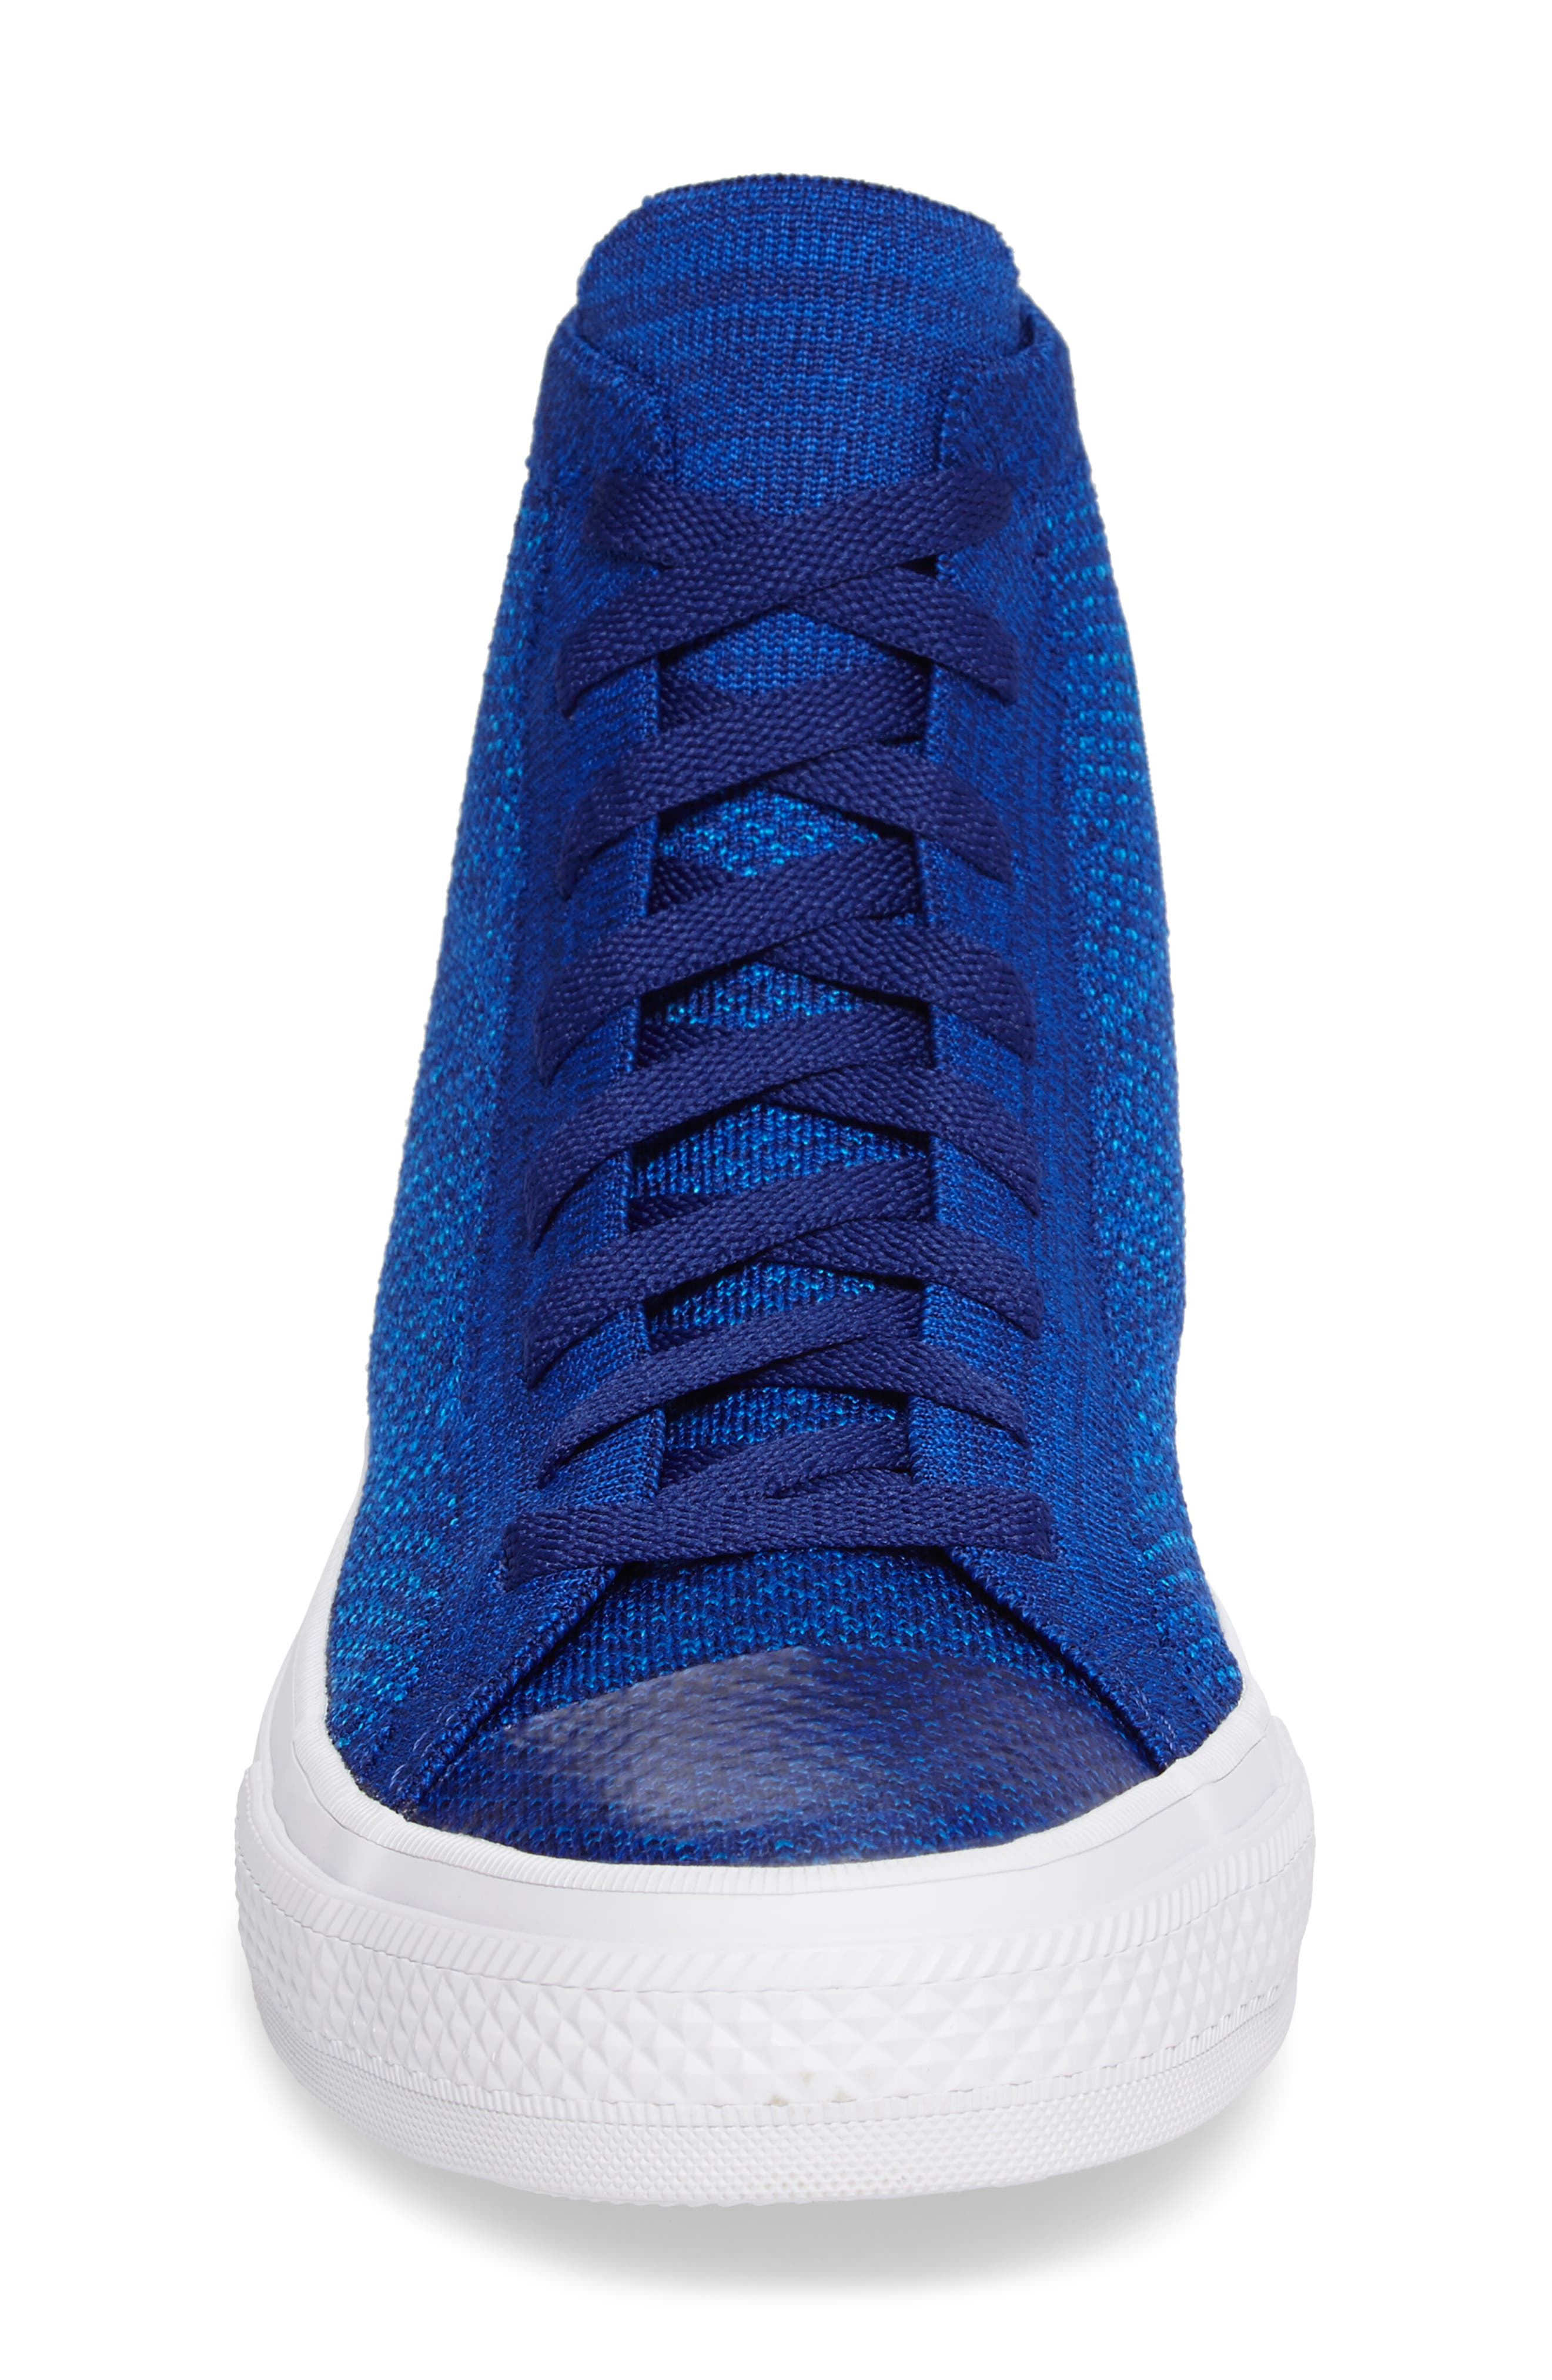 Chuck Taylor<sup>®</sup> All Star<sup>®</sup> Flyknit Hi Sneaker,                             Alternate thumbnail 23, color,